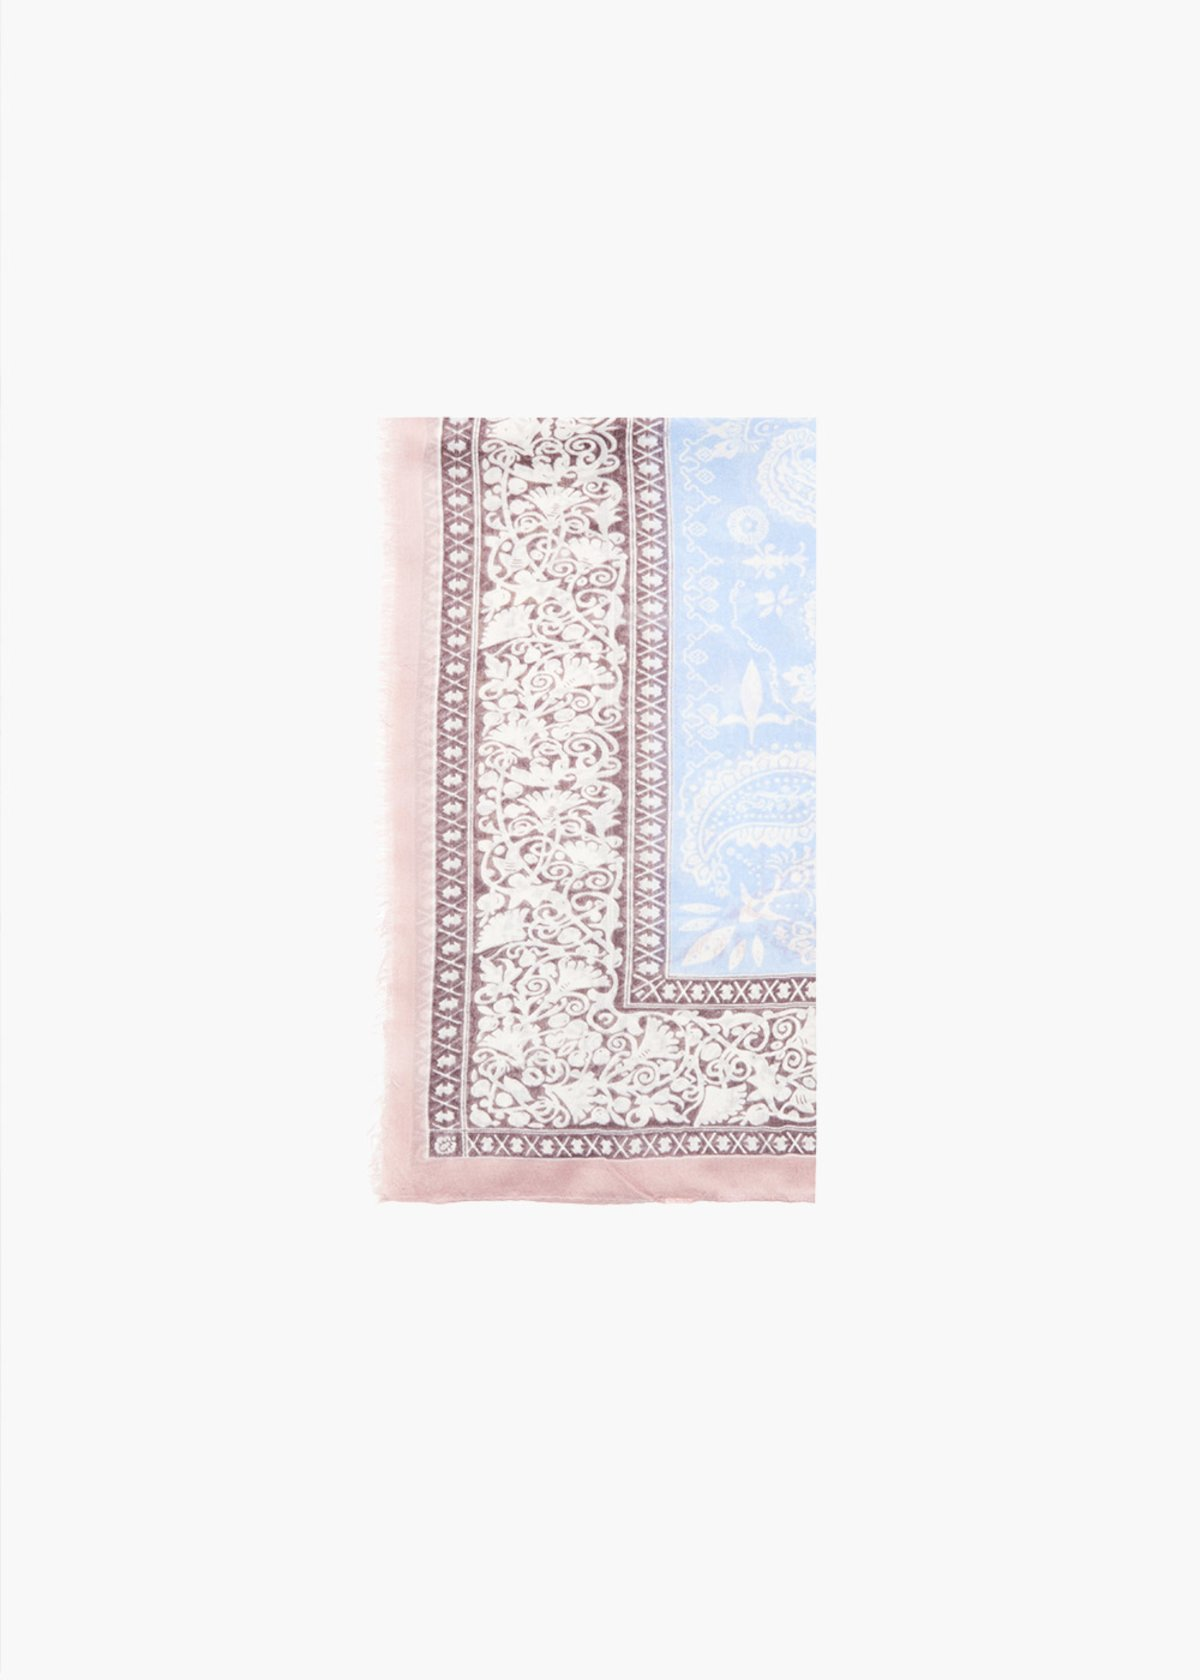 Sidny cashmere print scarf - Calcite Fantasia - Woman